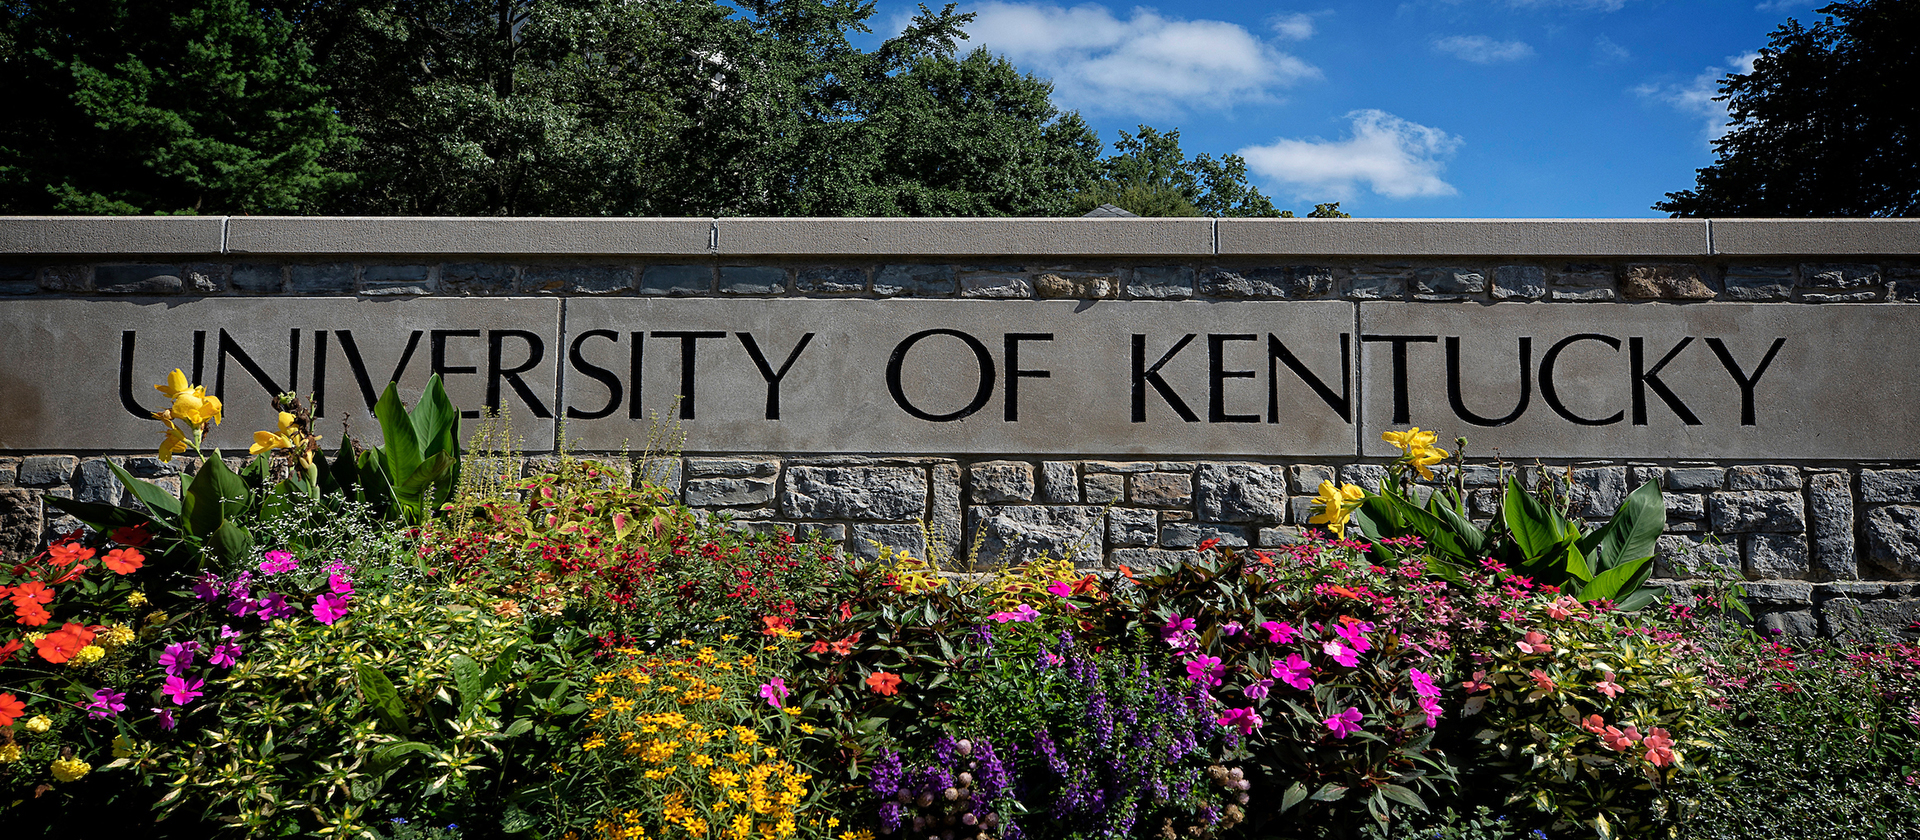 university of kentucky entrance